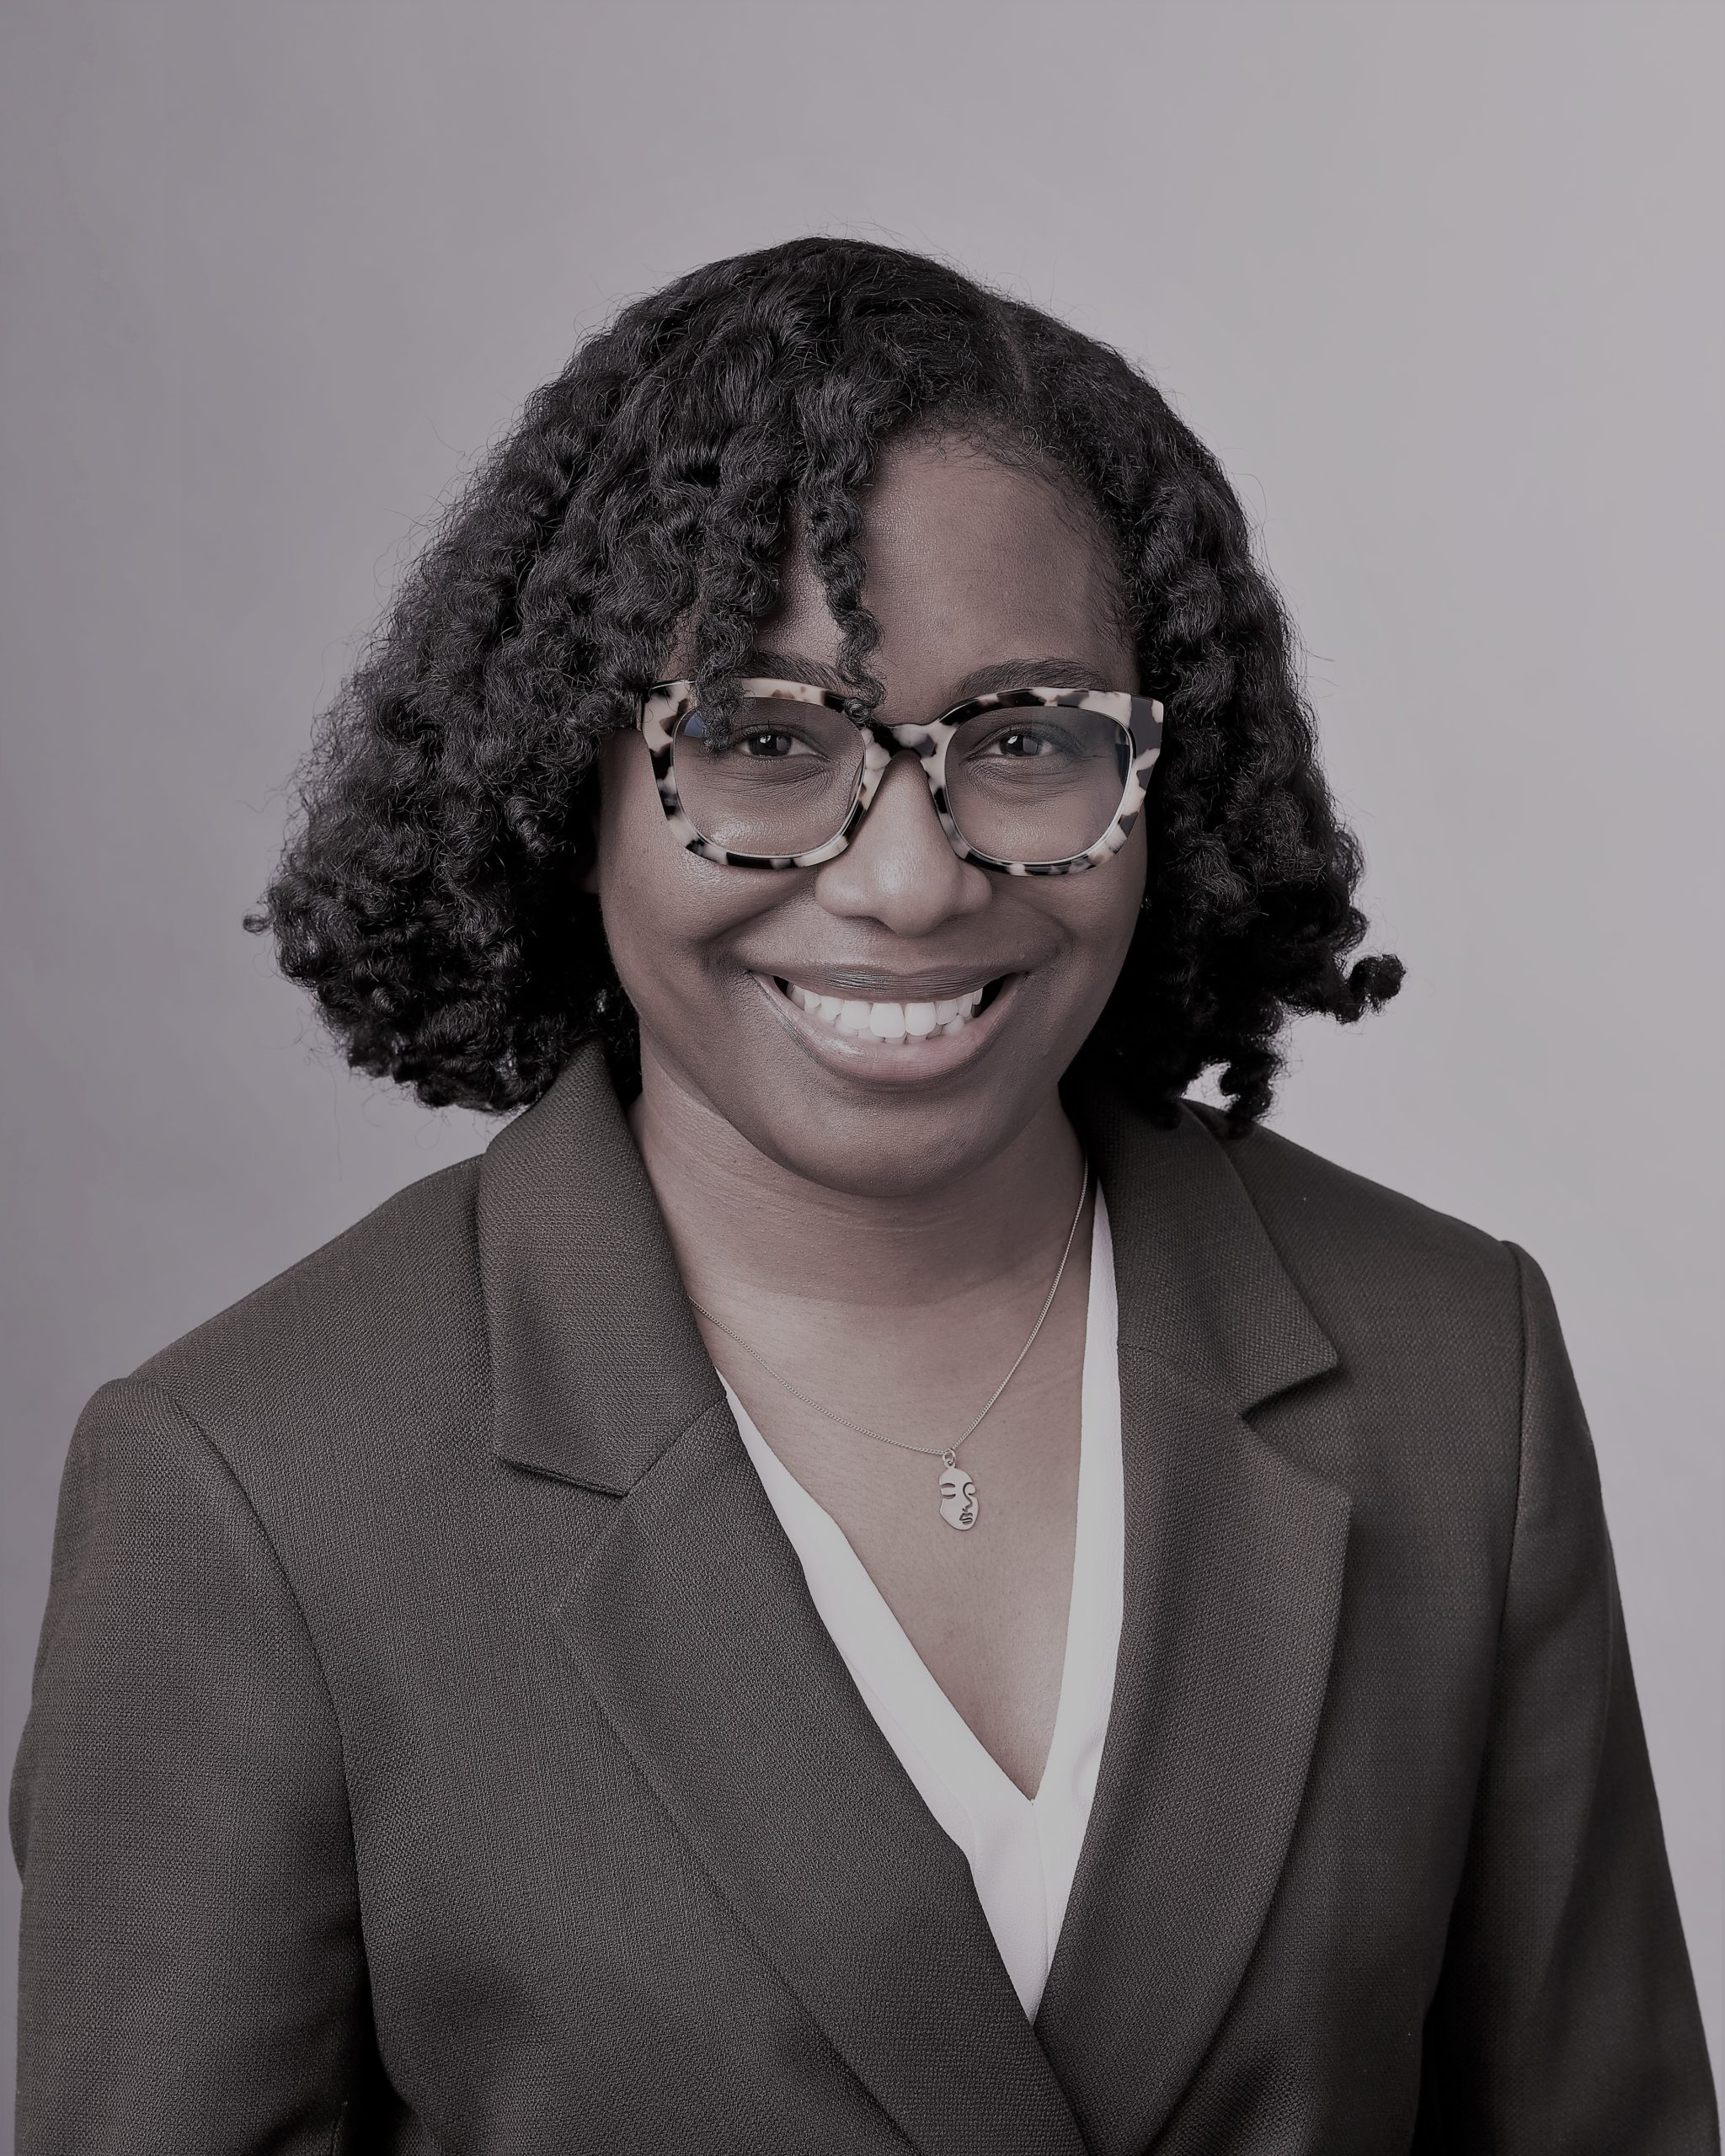 Portrait of Alesha Washington, Senior Program Officer for Community Revitalization and Economic Development